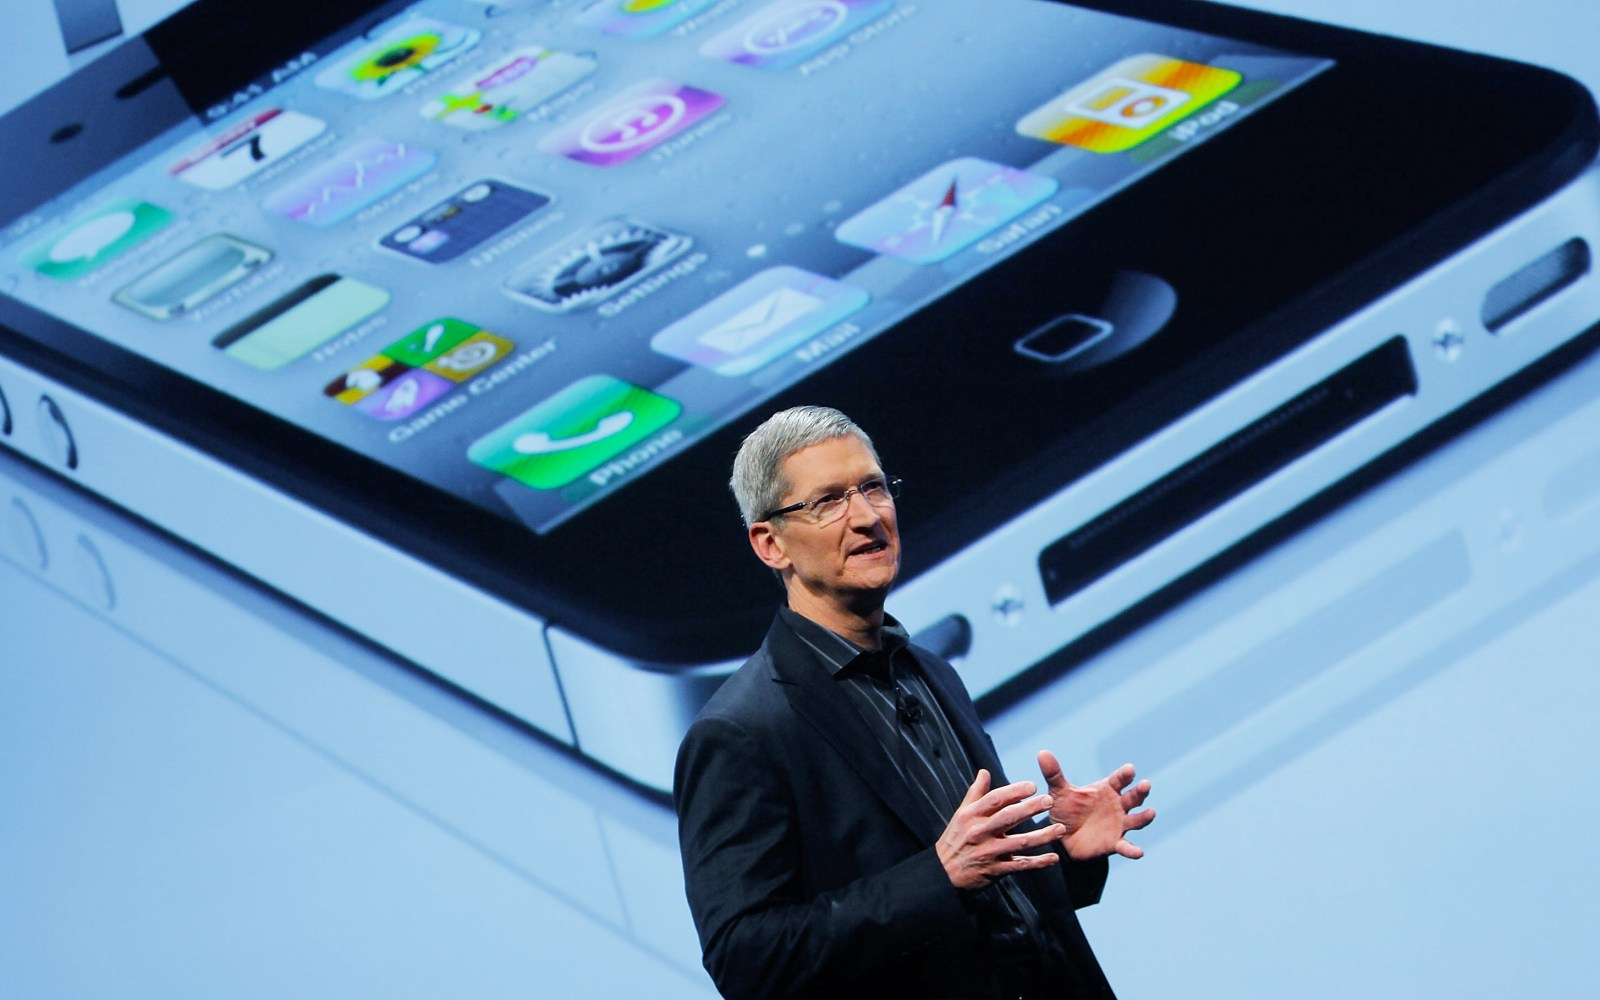 Apple will reportedly unveil the next iPhone on Sept. 10